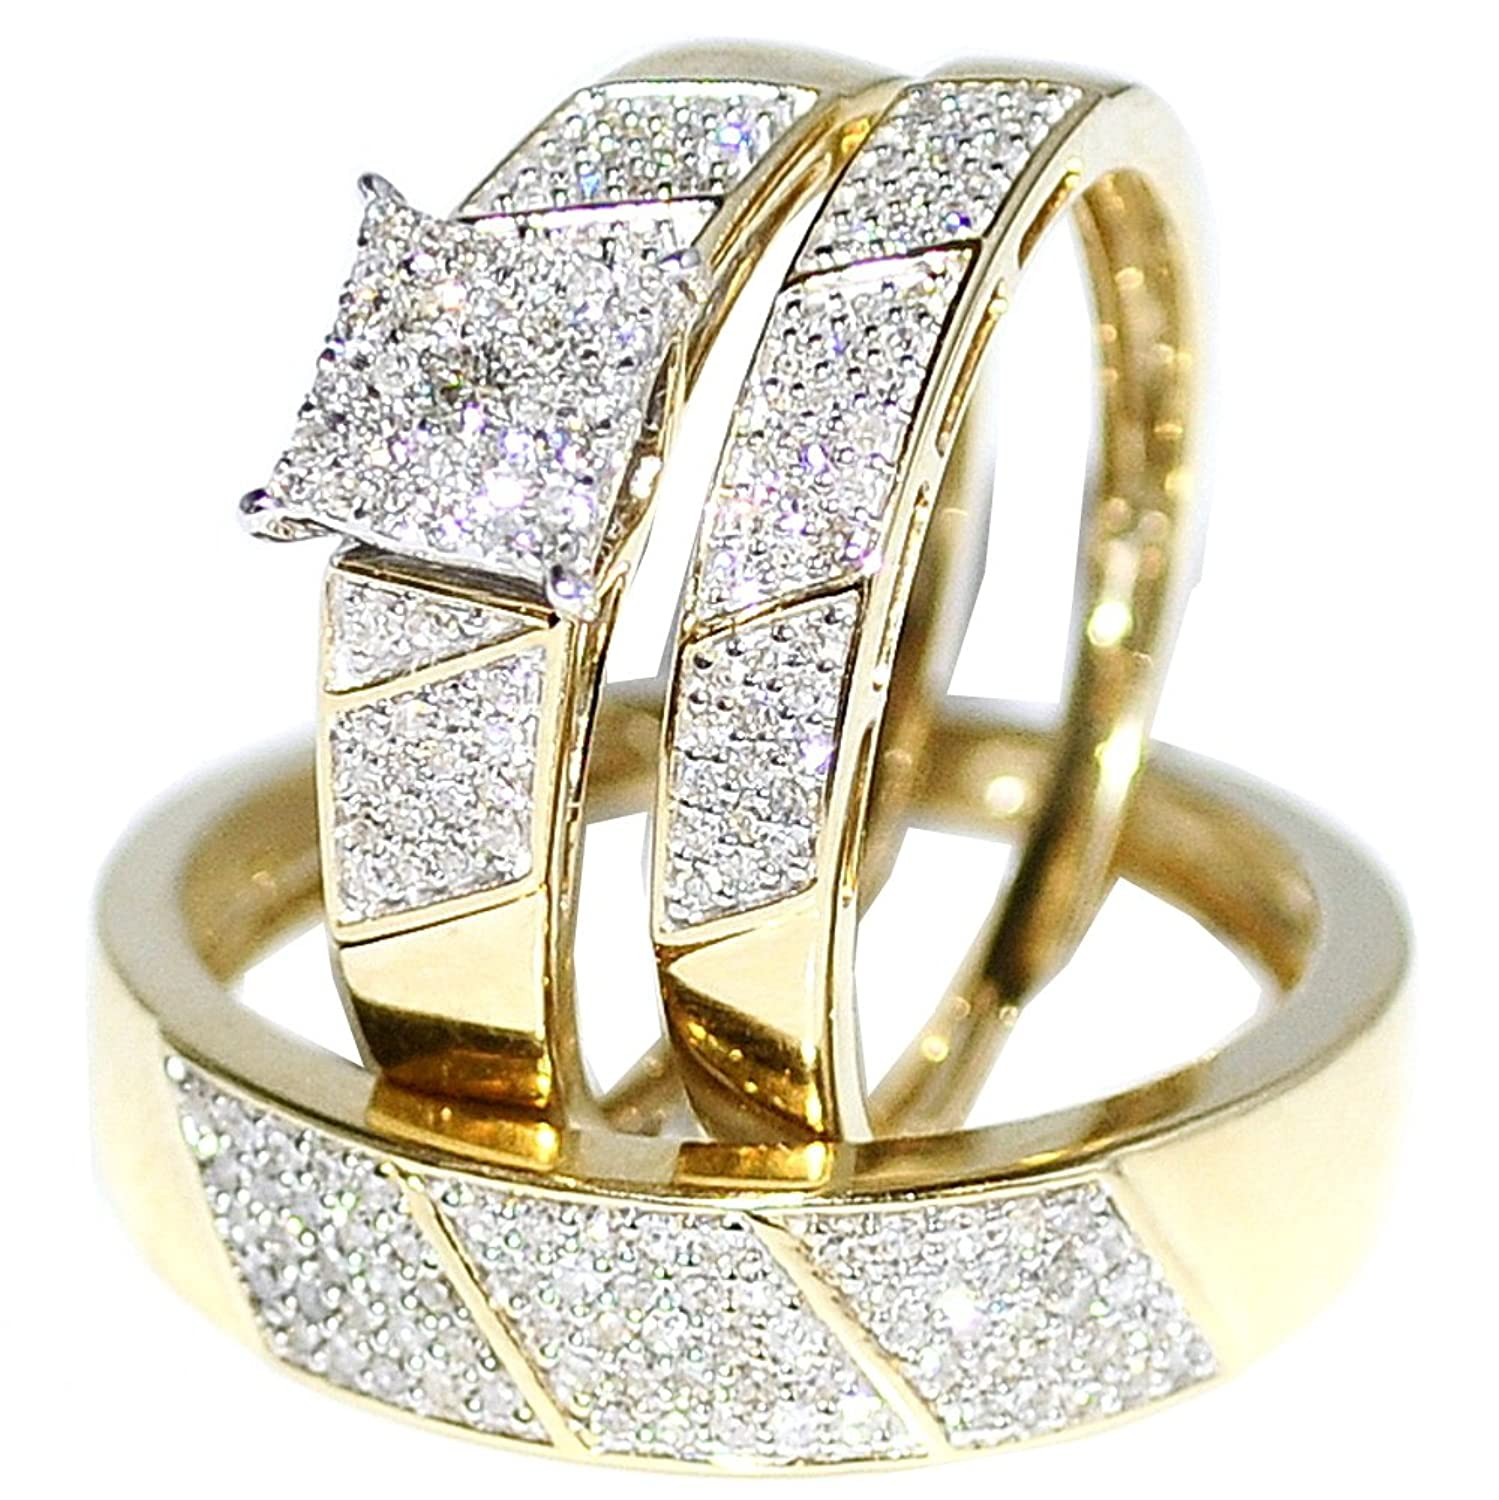 bride white engagement attachment sets for hers awesome and gold with matching bands his wedding of view appealing full titanium groom gallery rings